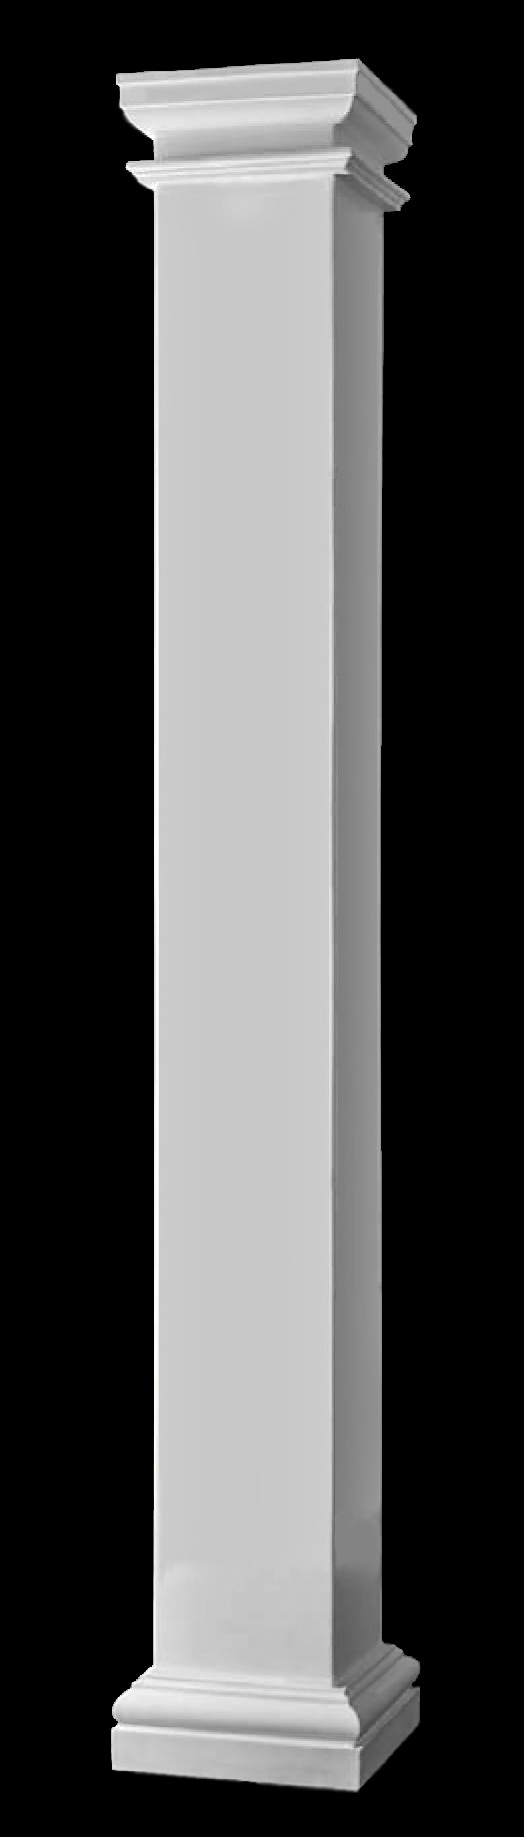 Fiberglass columns large square fiberglass composite for Interior square columns